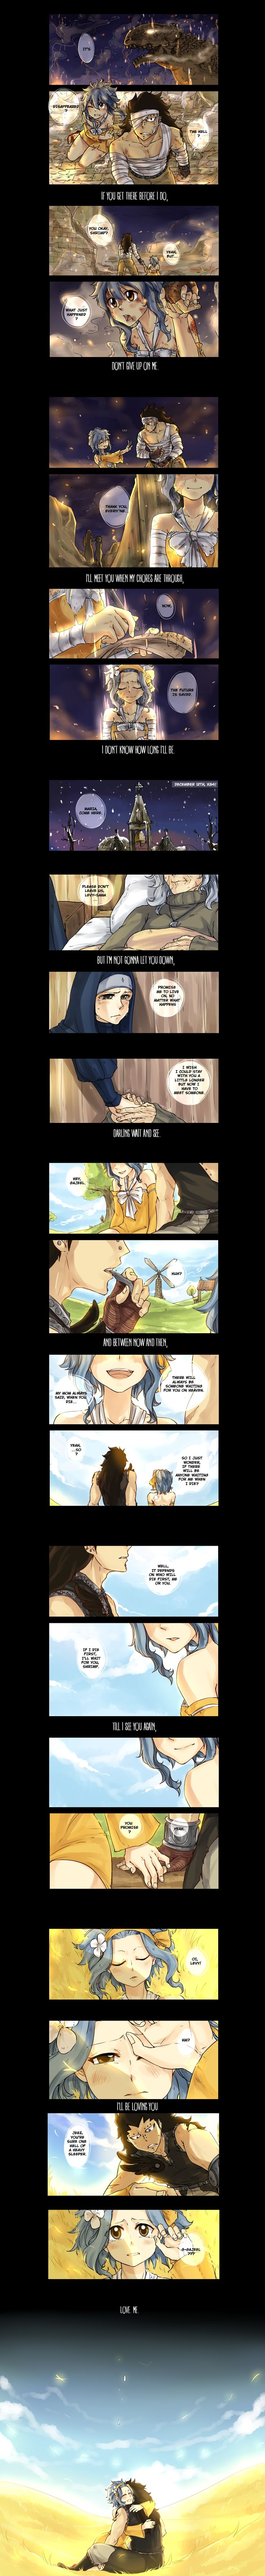 Angstmas Entry by blanania.deviantart.com on @DeviantArt ( the feels ...c:)